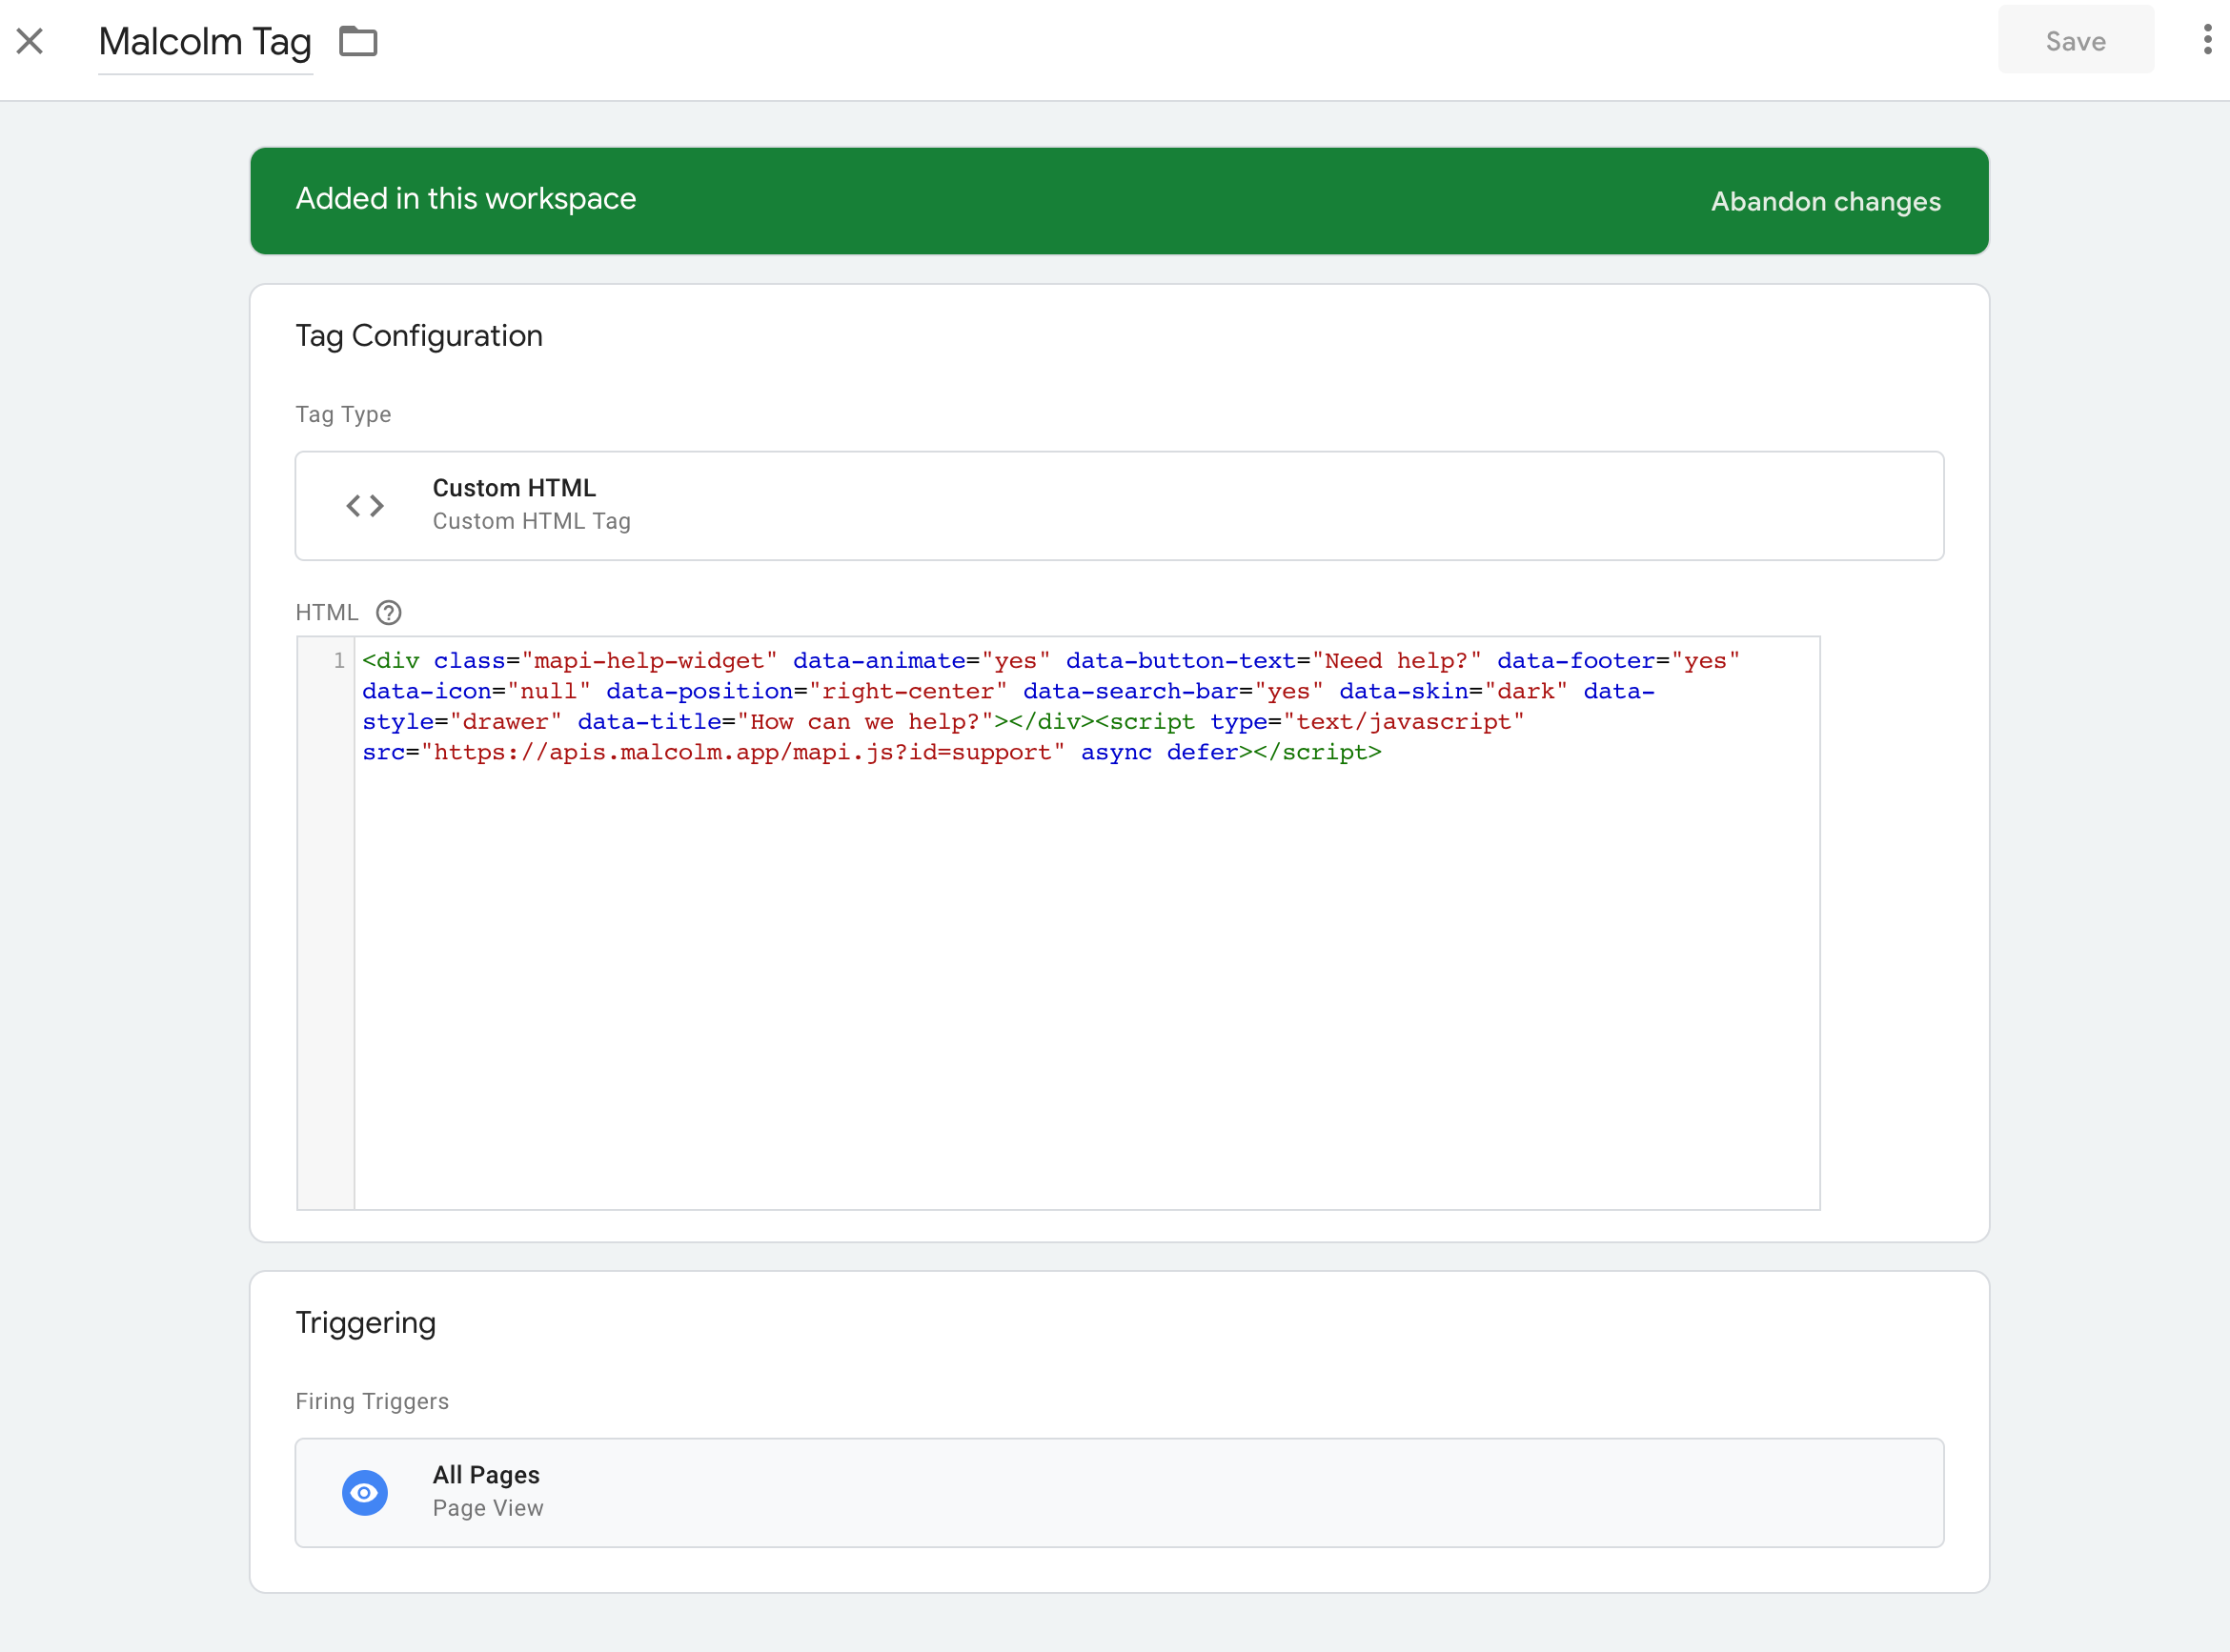 Adding Malcolm! embed code into Google Tag Manager